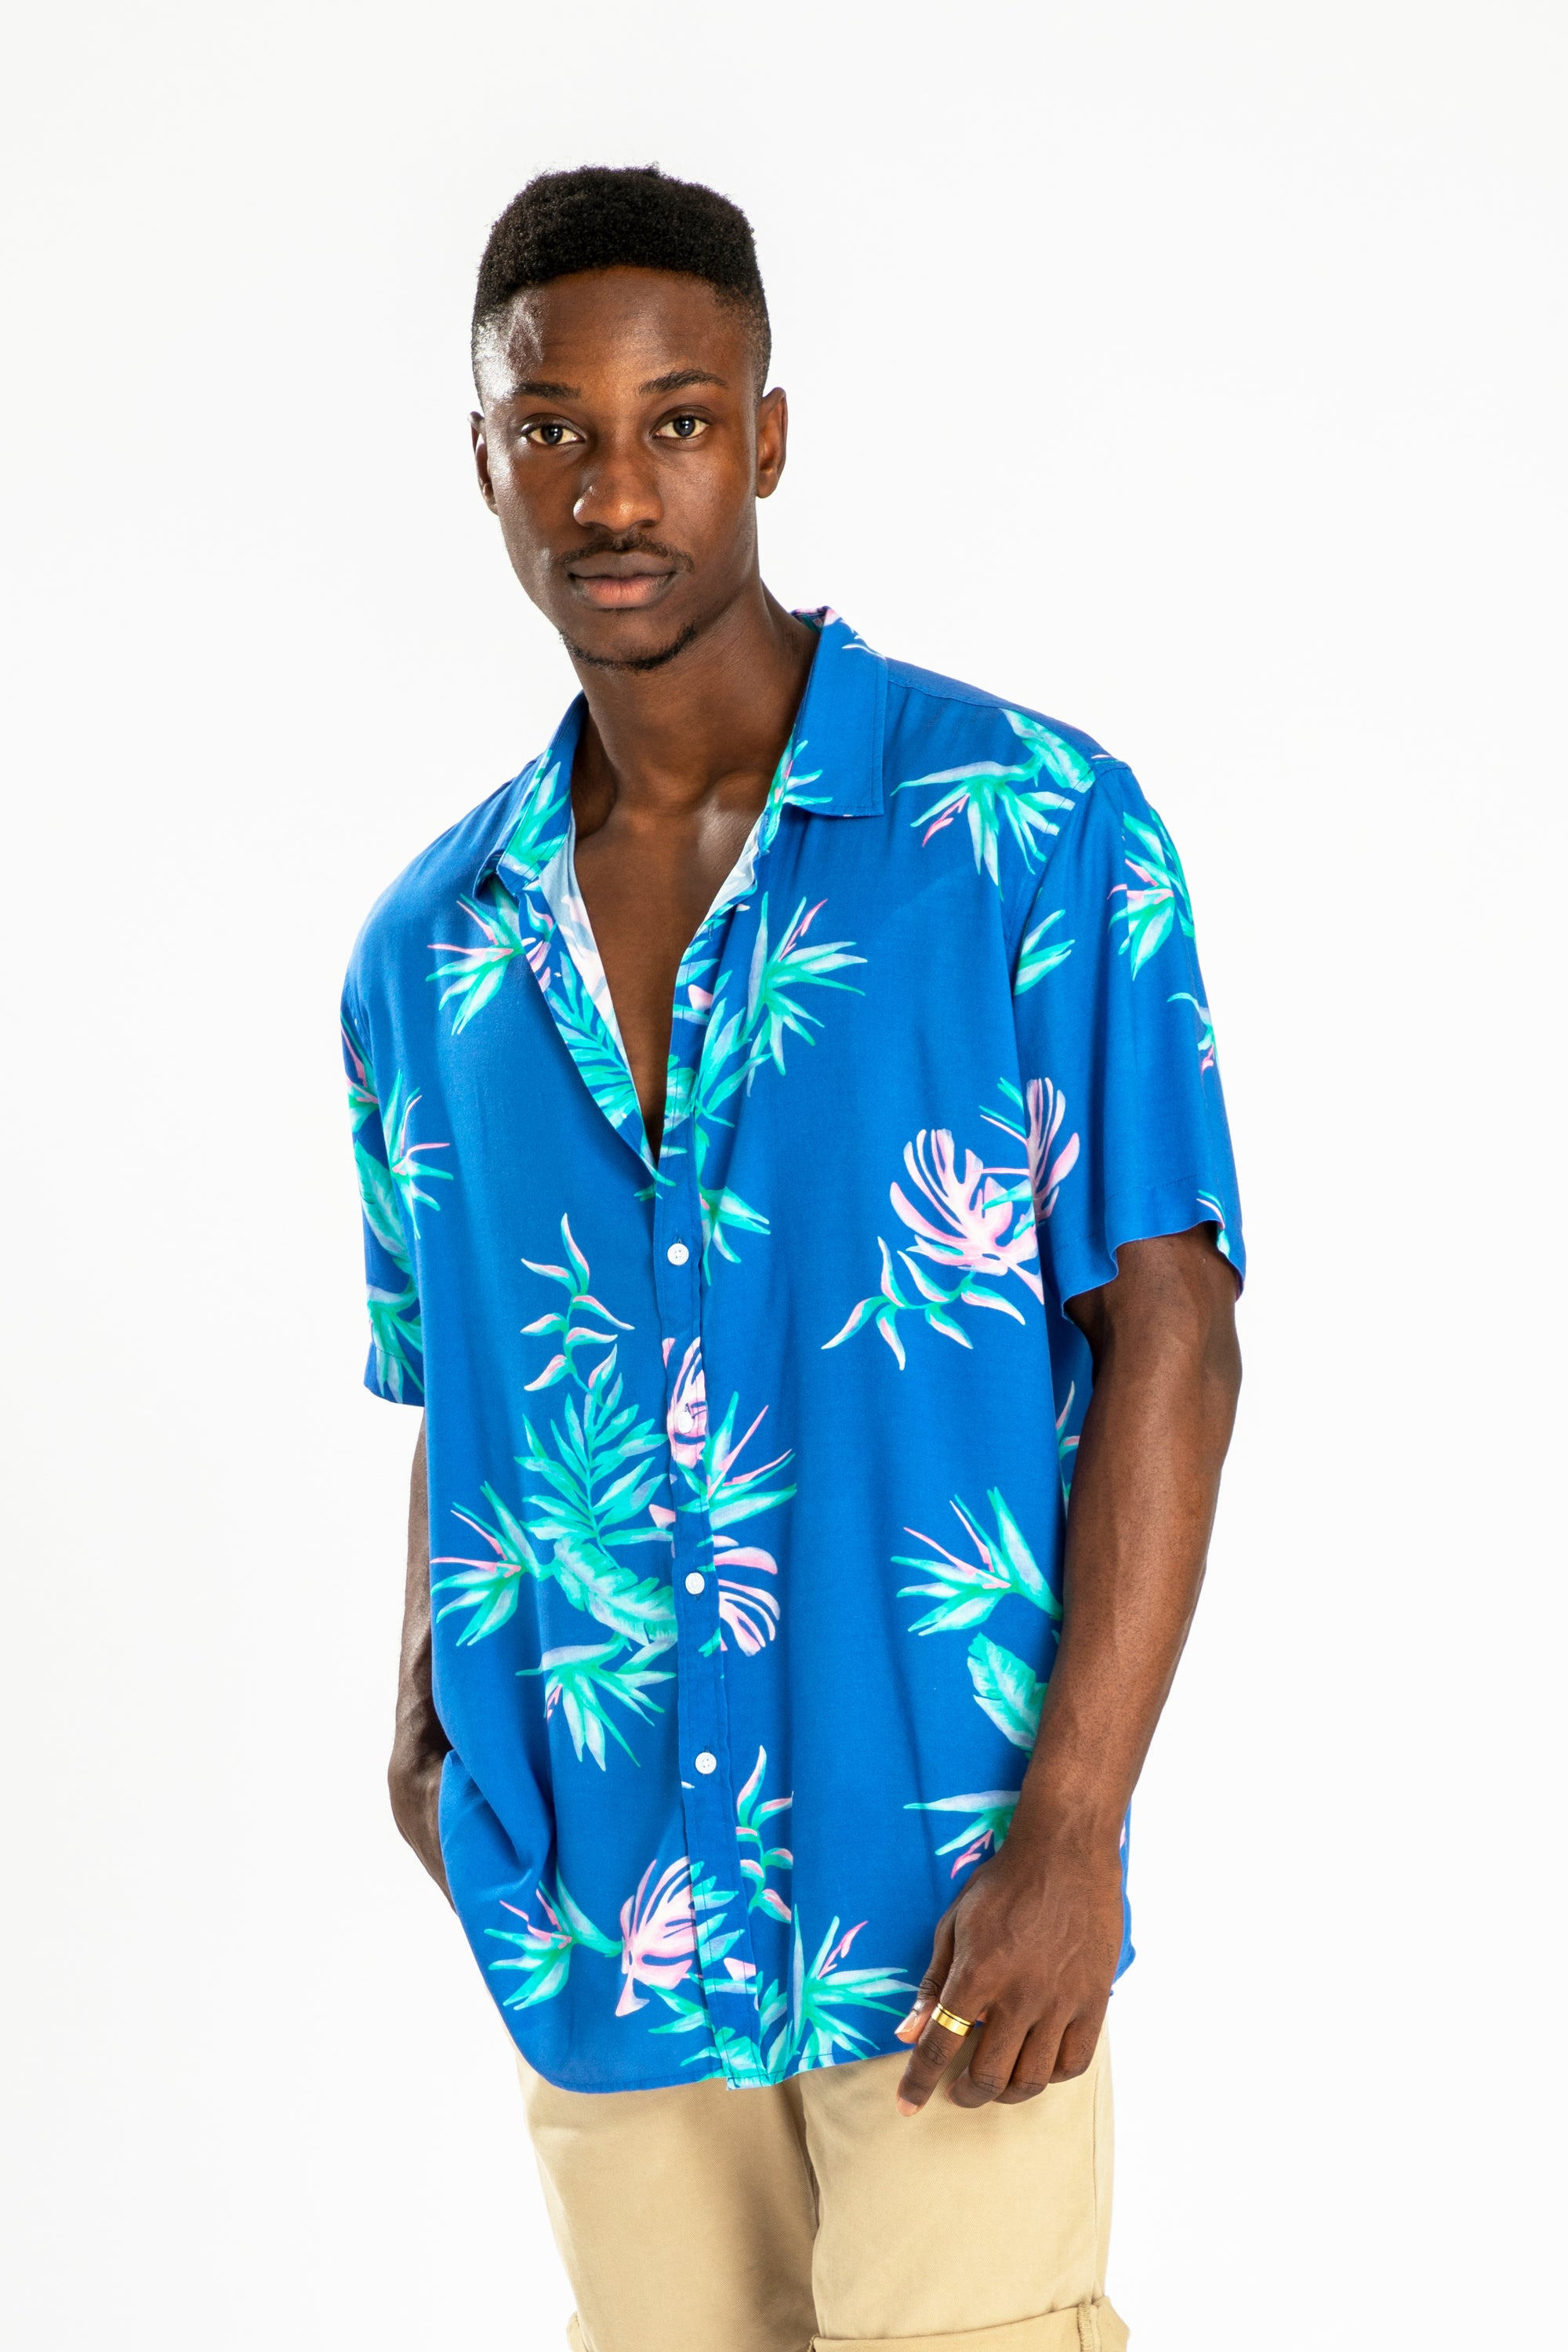 men's short sleeve party shirt by Poolside Party Shirts with blue tropical textile print front view